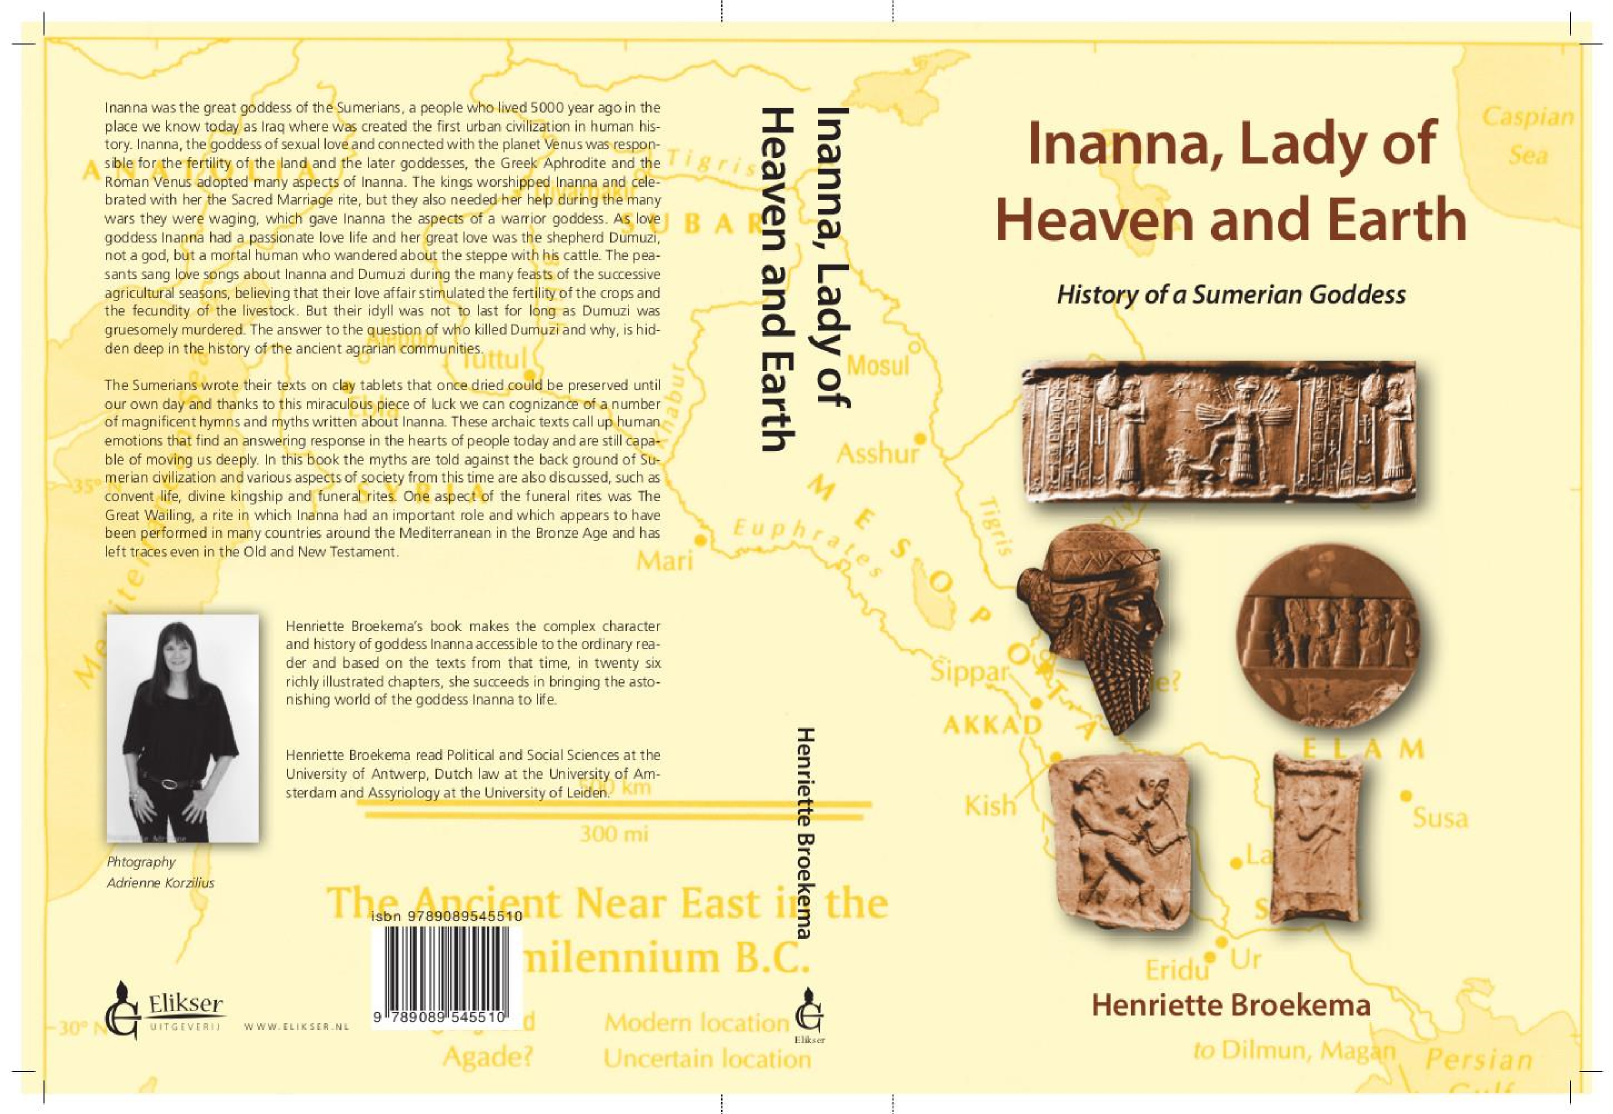 Inanna,Lady of Heaven and Earth